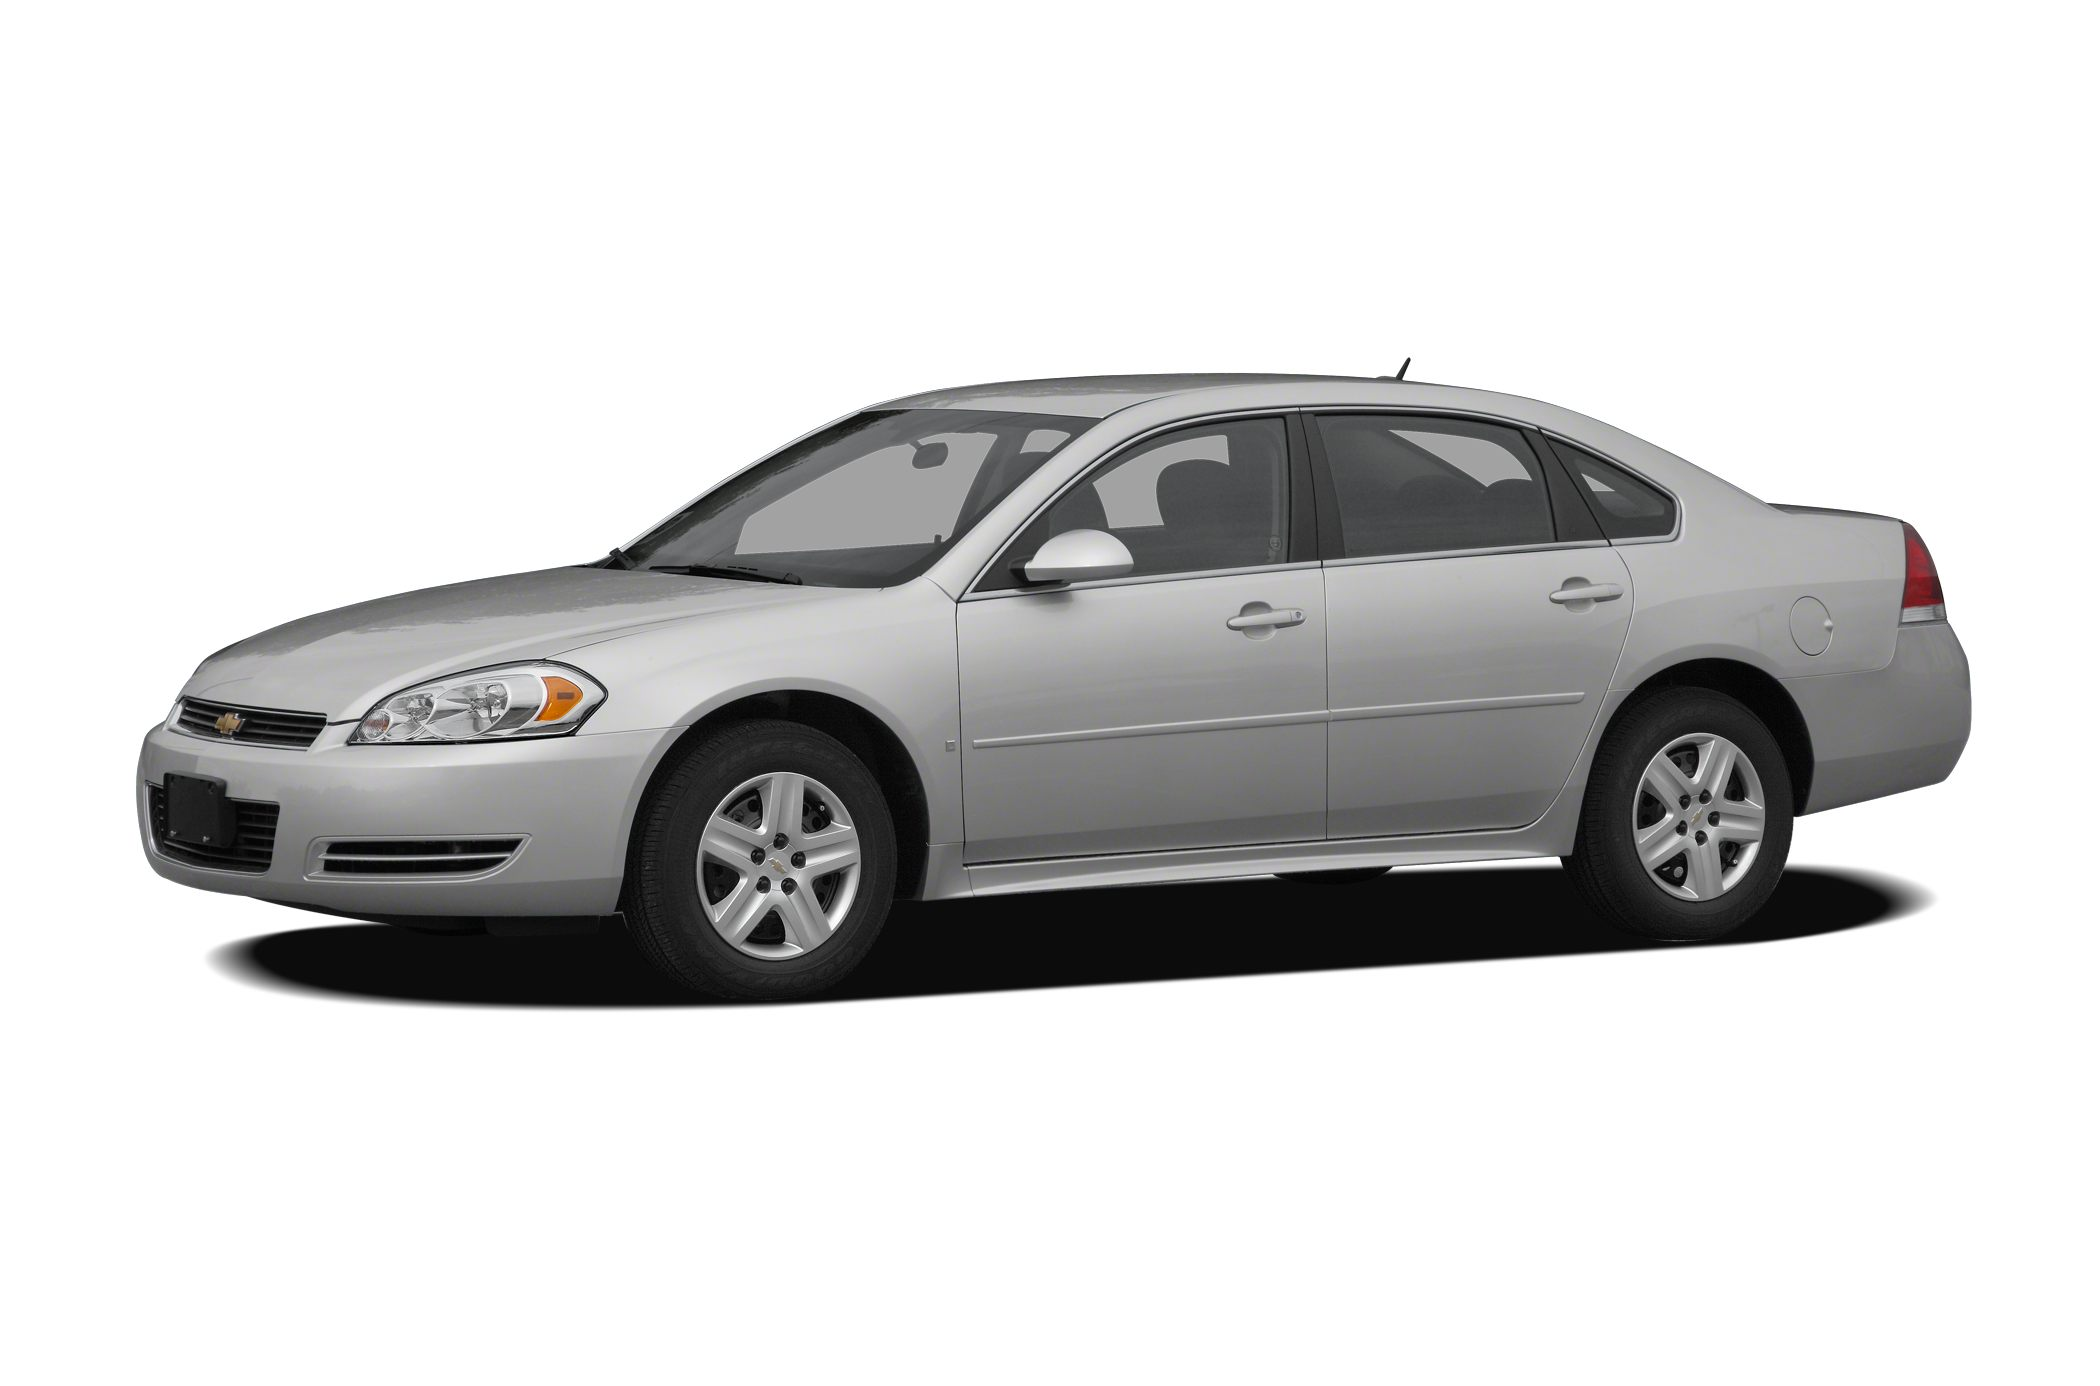 2010 Chevrolet Impala LT Excellent Condition GREAT MILES 47751 PRICED TO MOVE 1300 below Kell